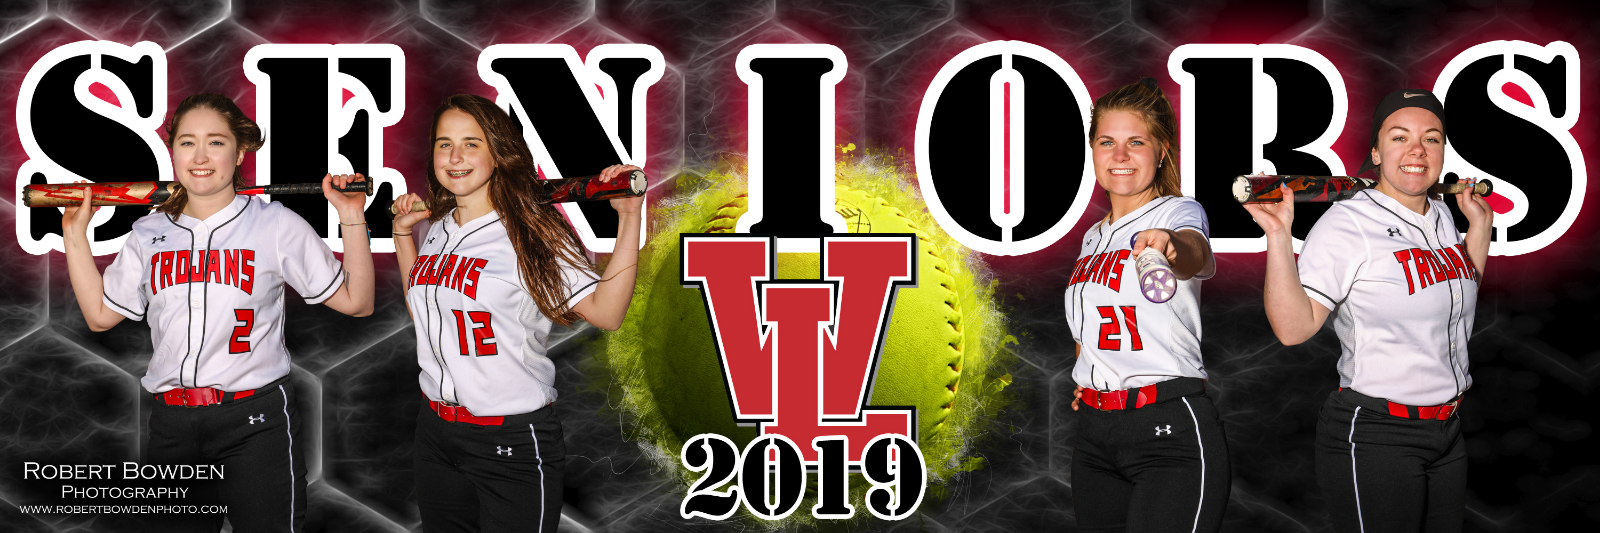 Softball District Championship to resume on Tuesday at Concordia University